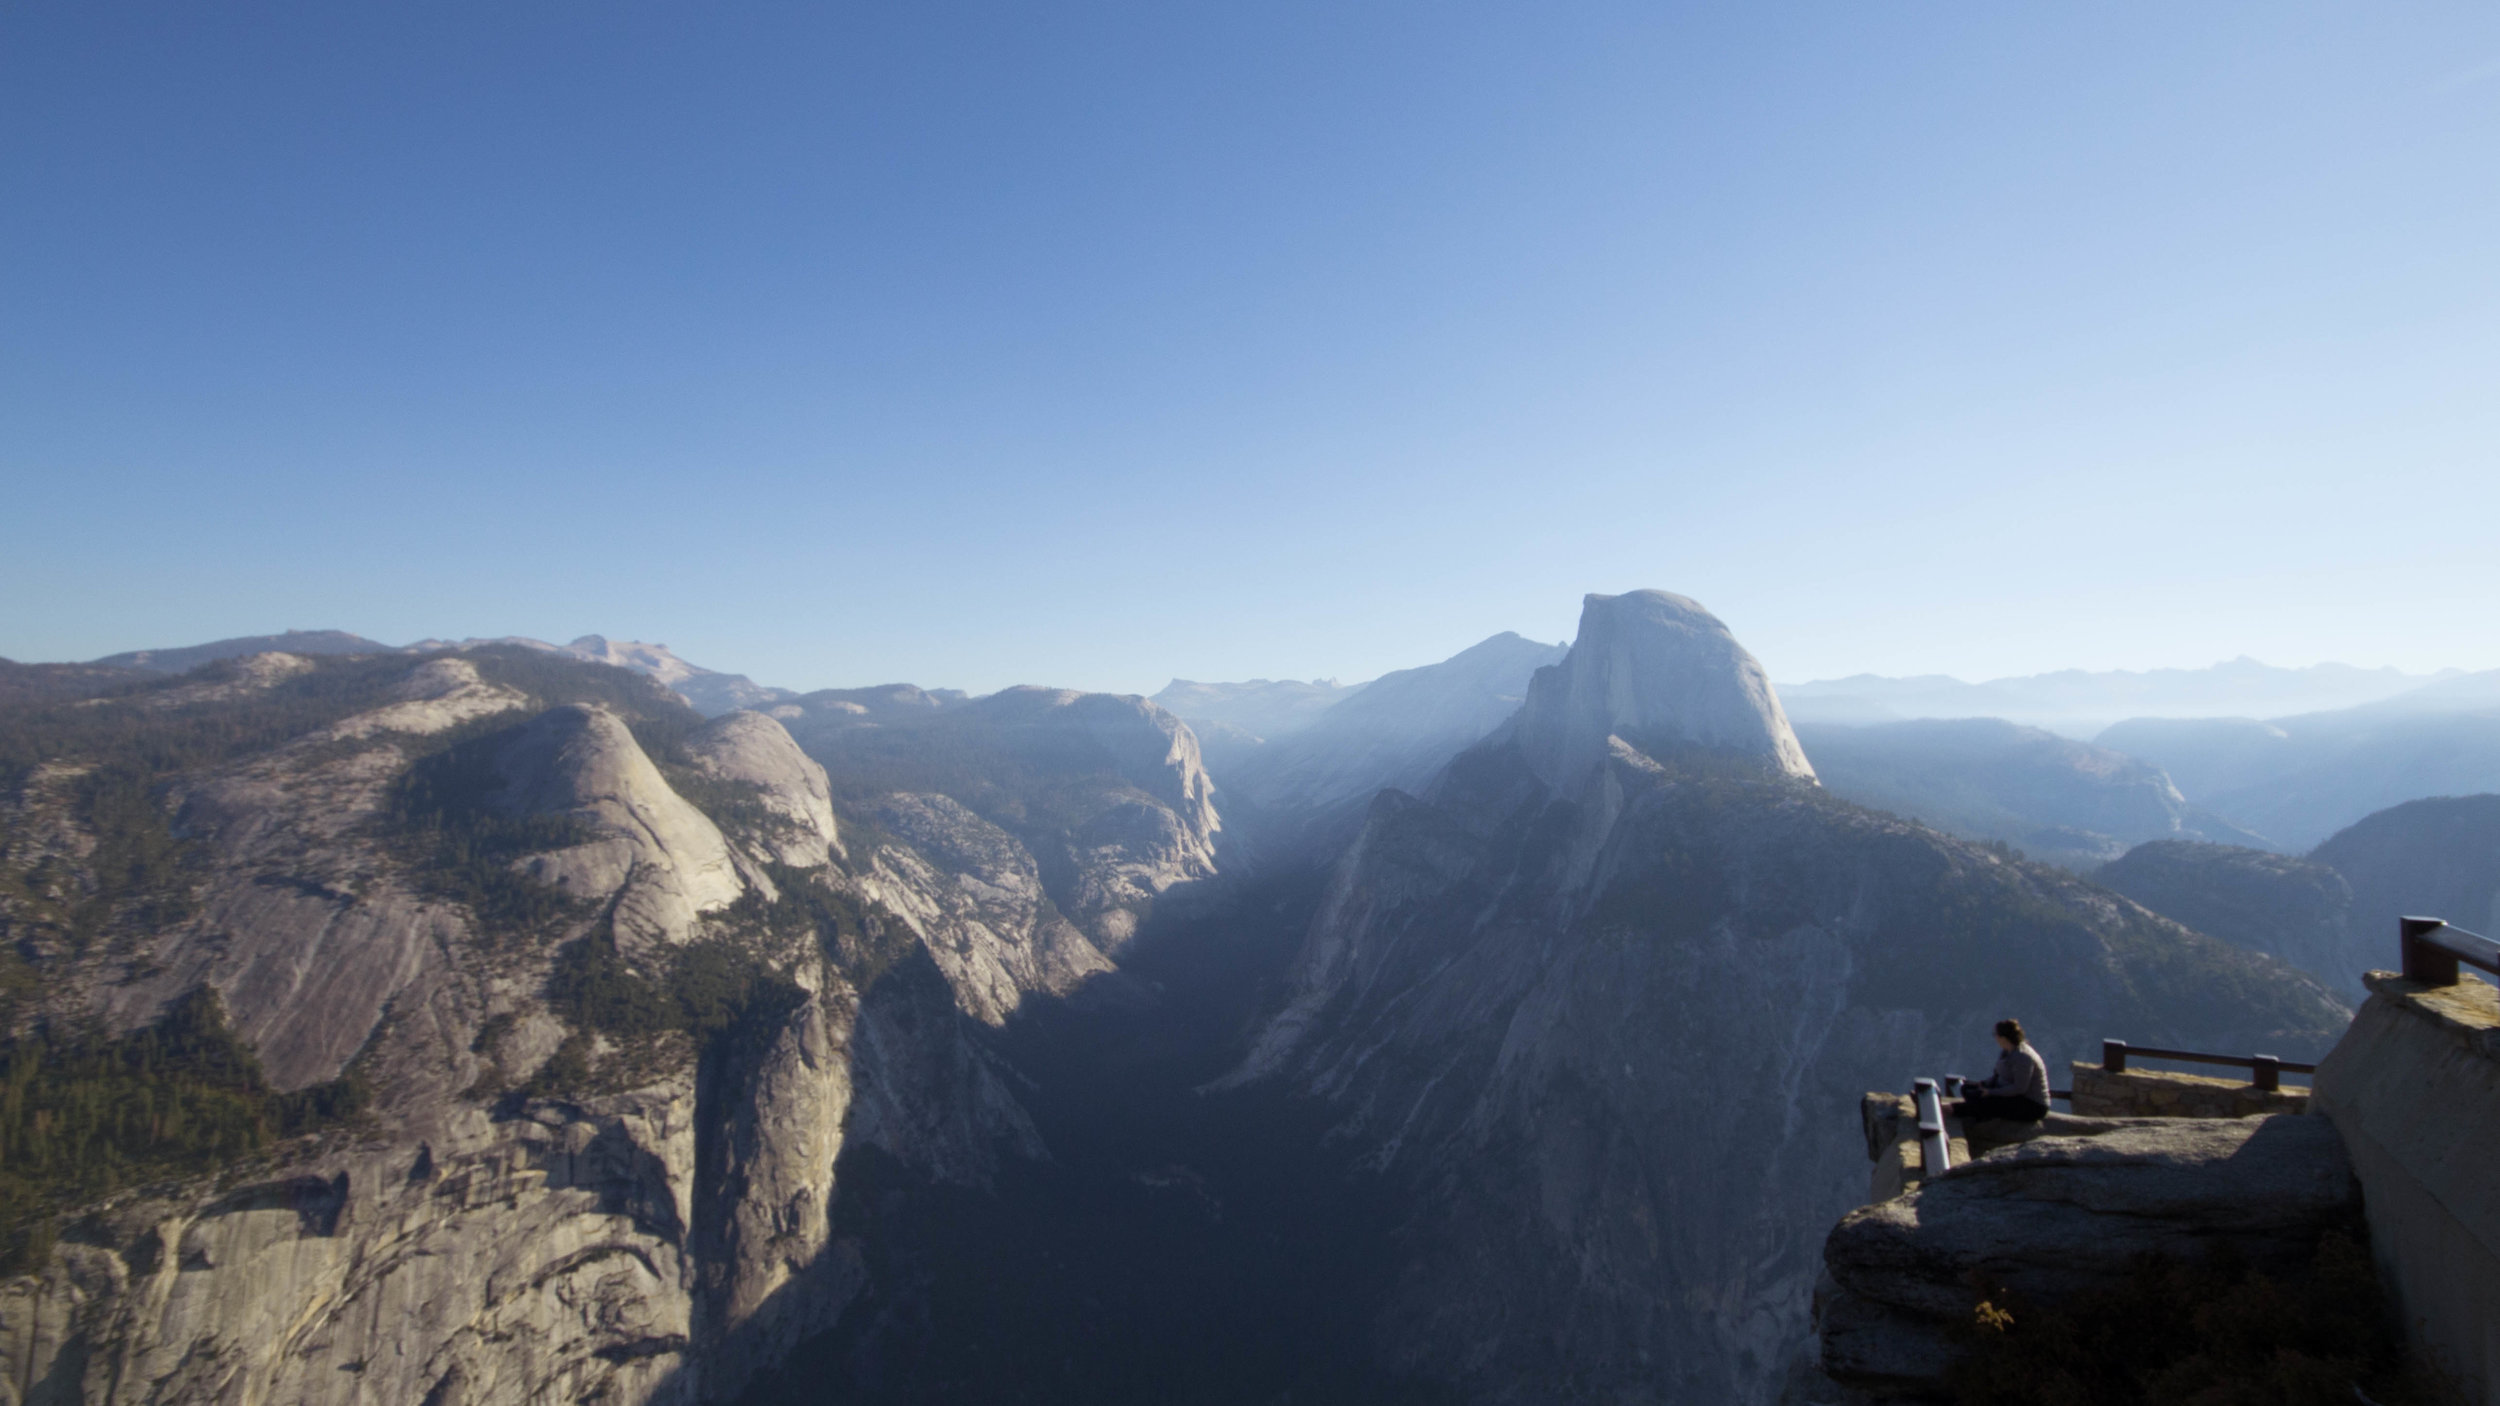 Victoria Ramos looking out through the valley at Yosemite National Park.